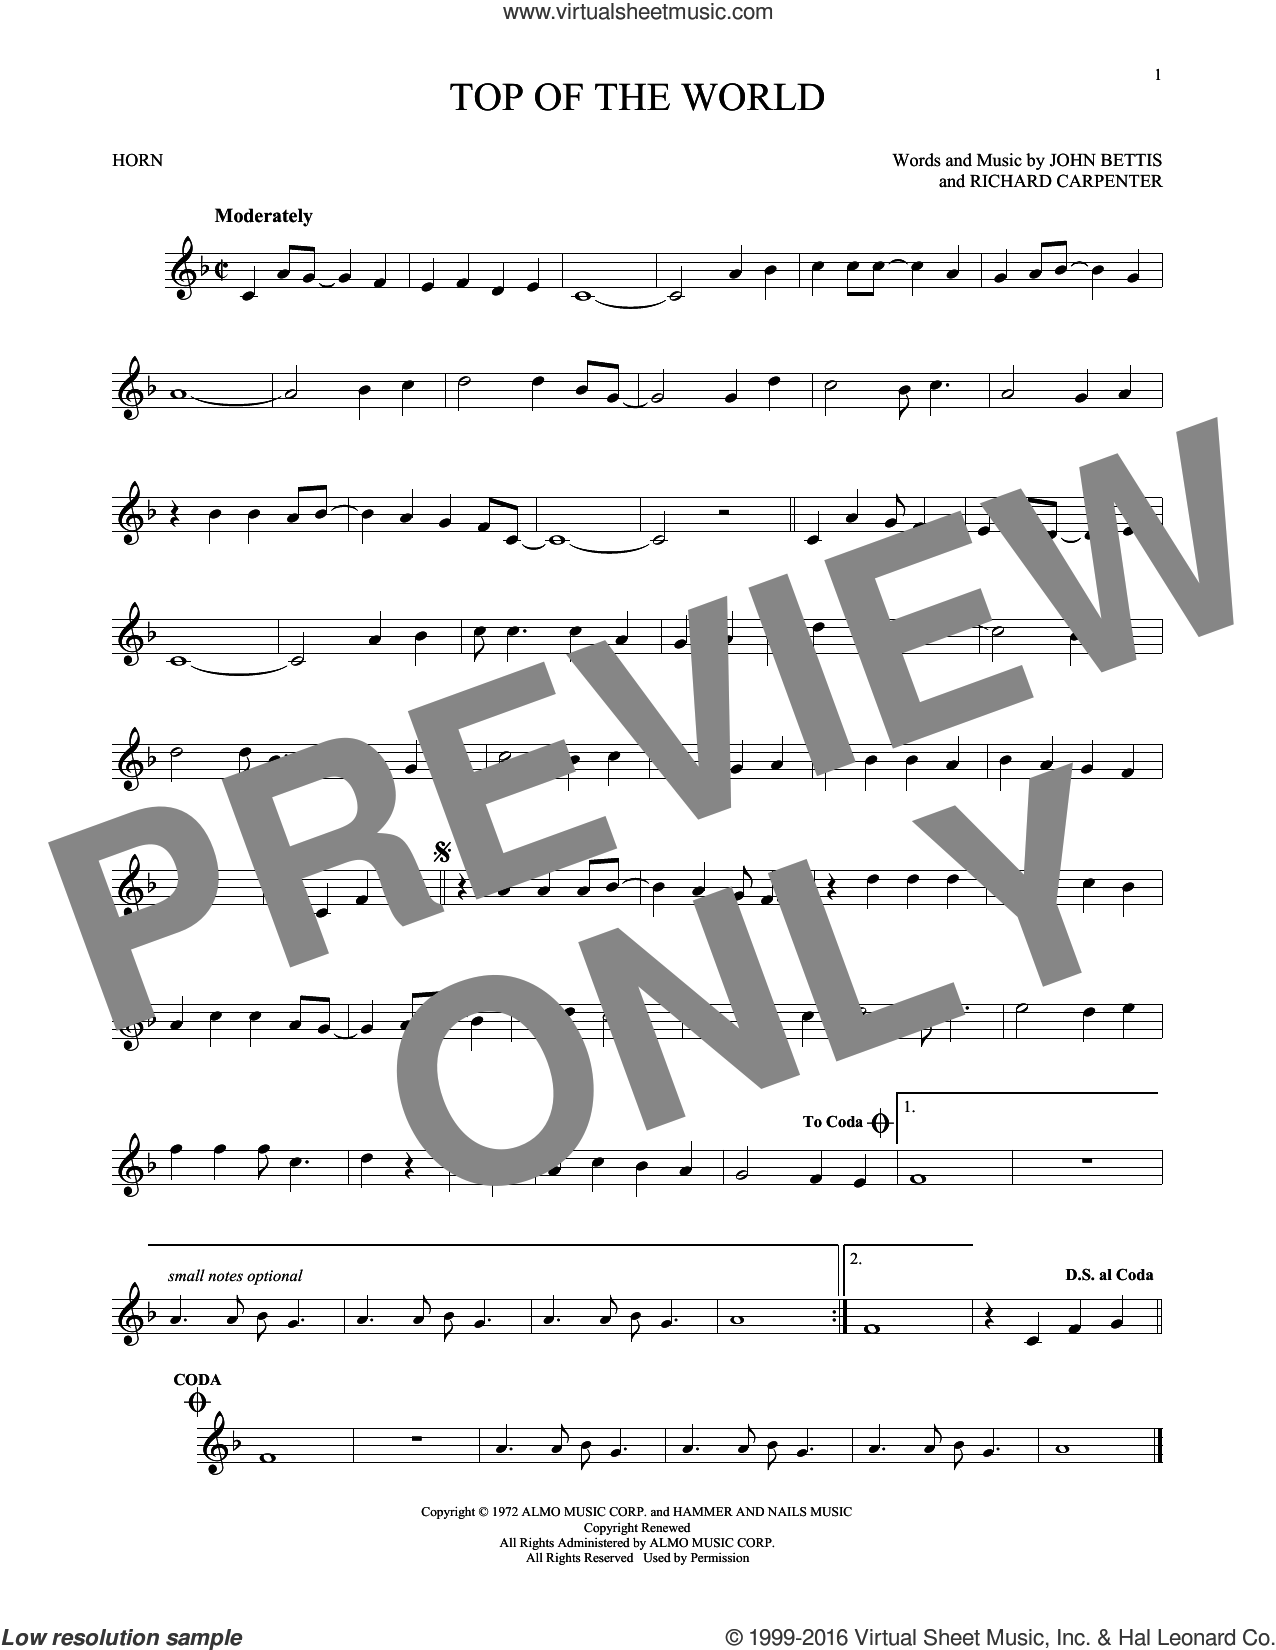 Top Of The World sheet music for horn solo by Richard Carpenter